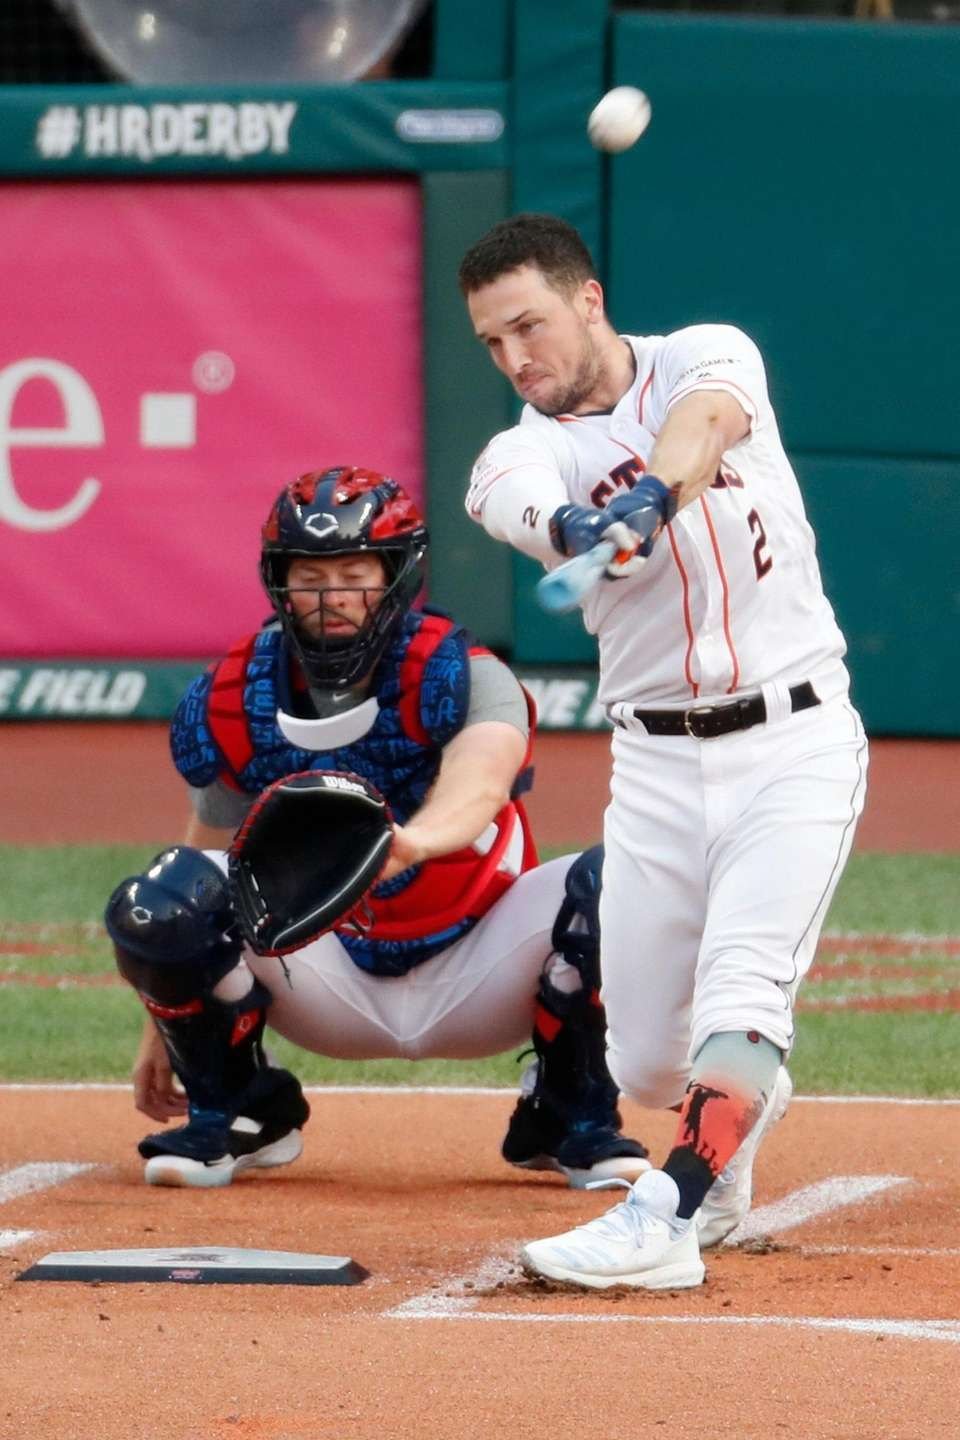 Alex Bregman, of the Houston Astros, hits during